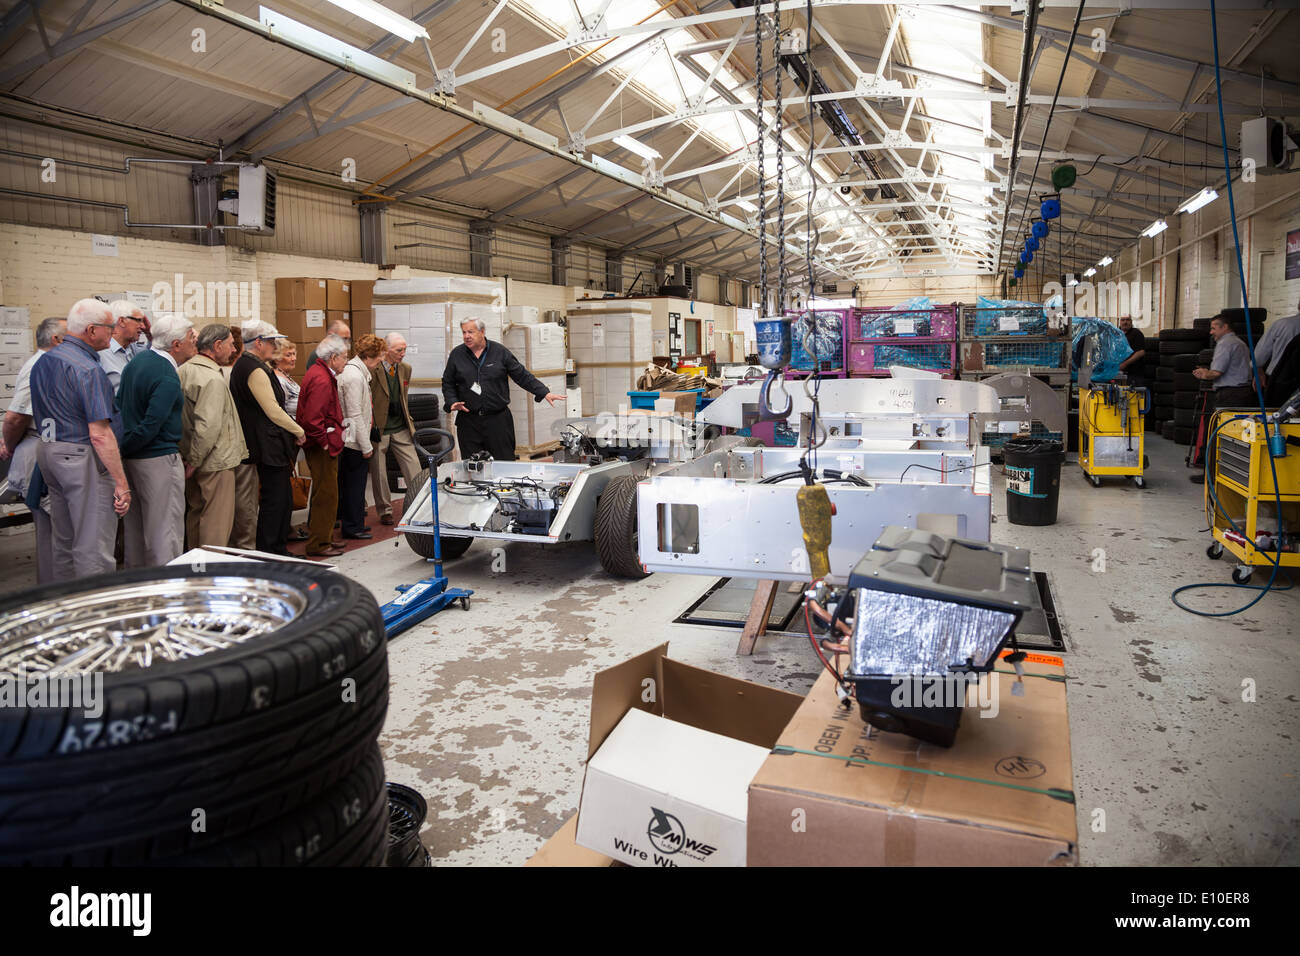 A group of people being shown round the Morgan Motors Car factory - Stock Image